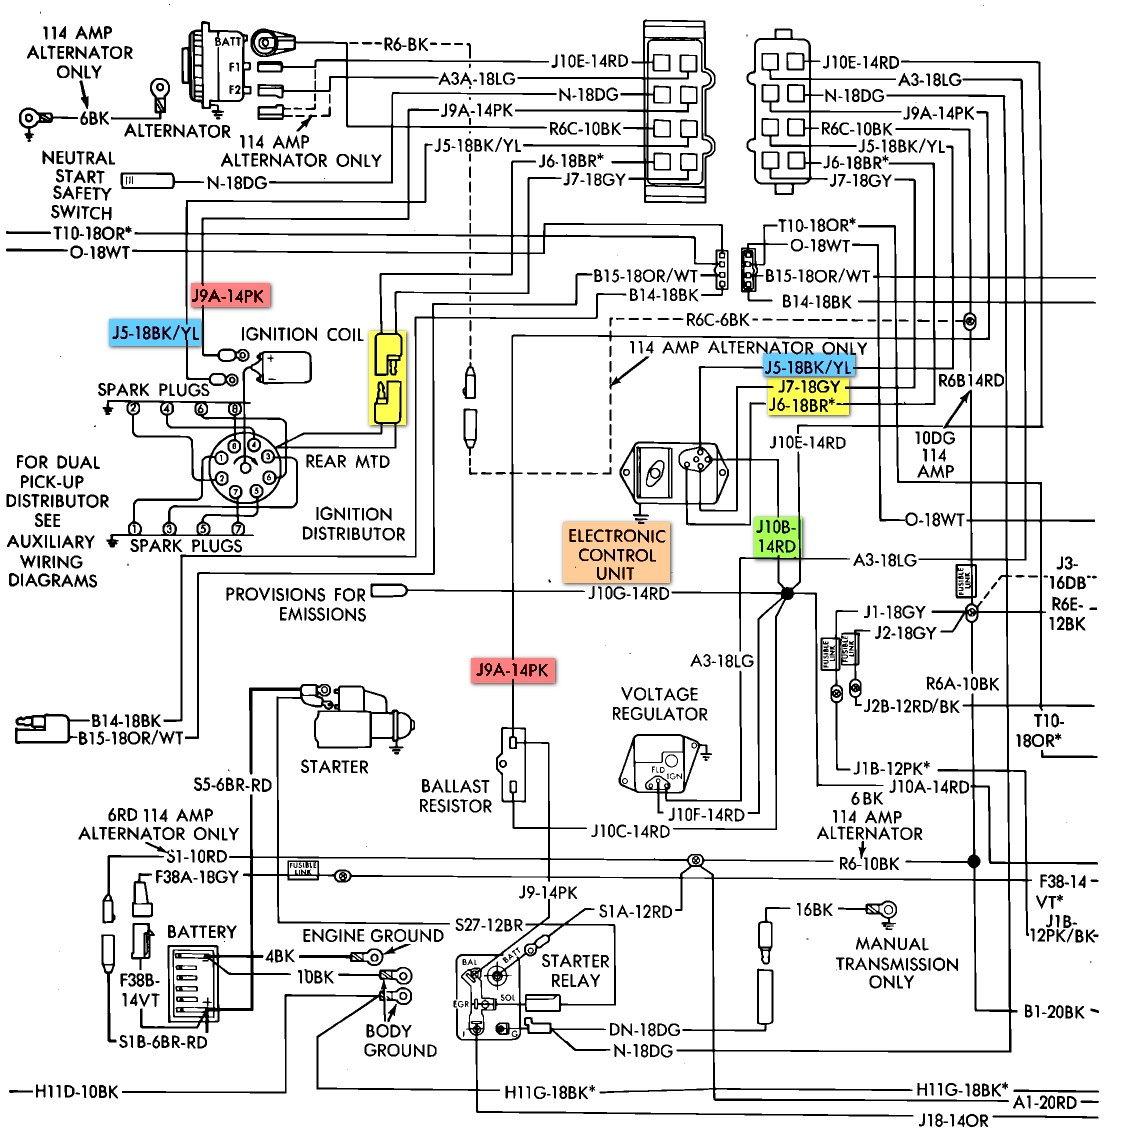 78 Dodge Van Wiring Diagram | Wiring Diagram on